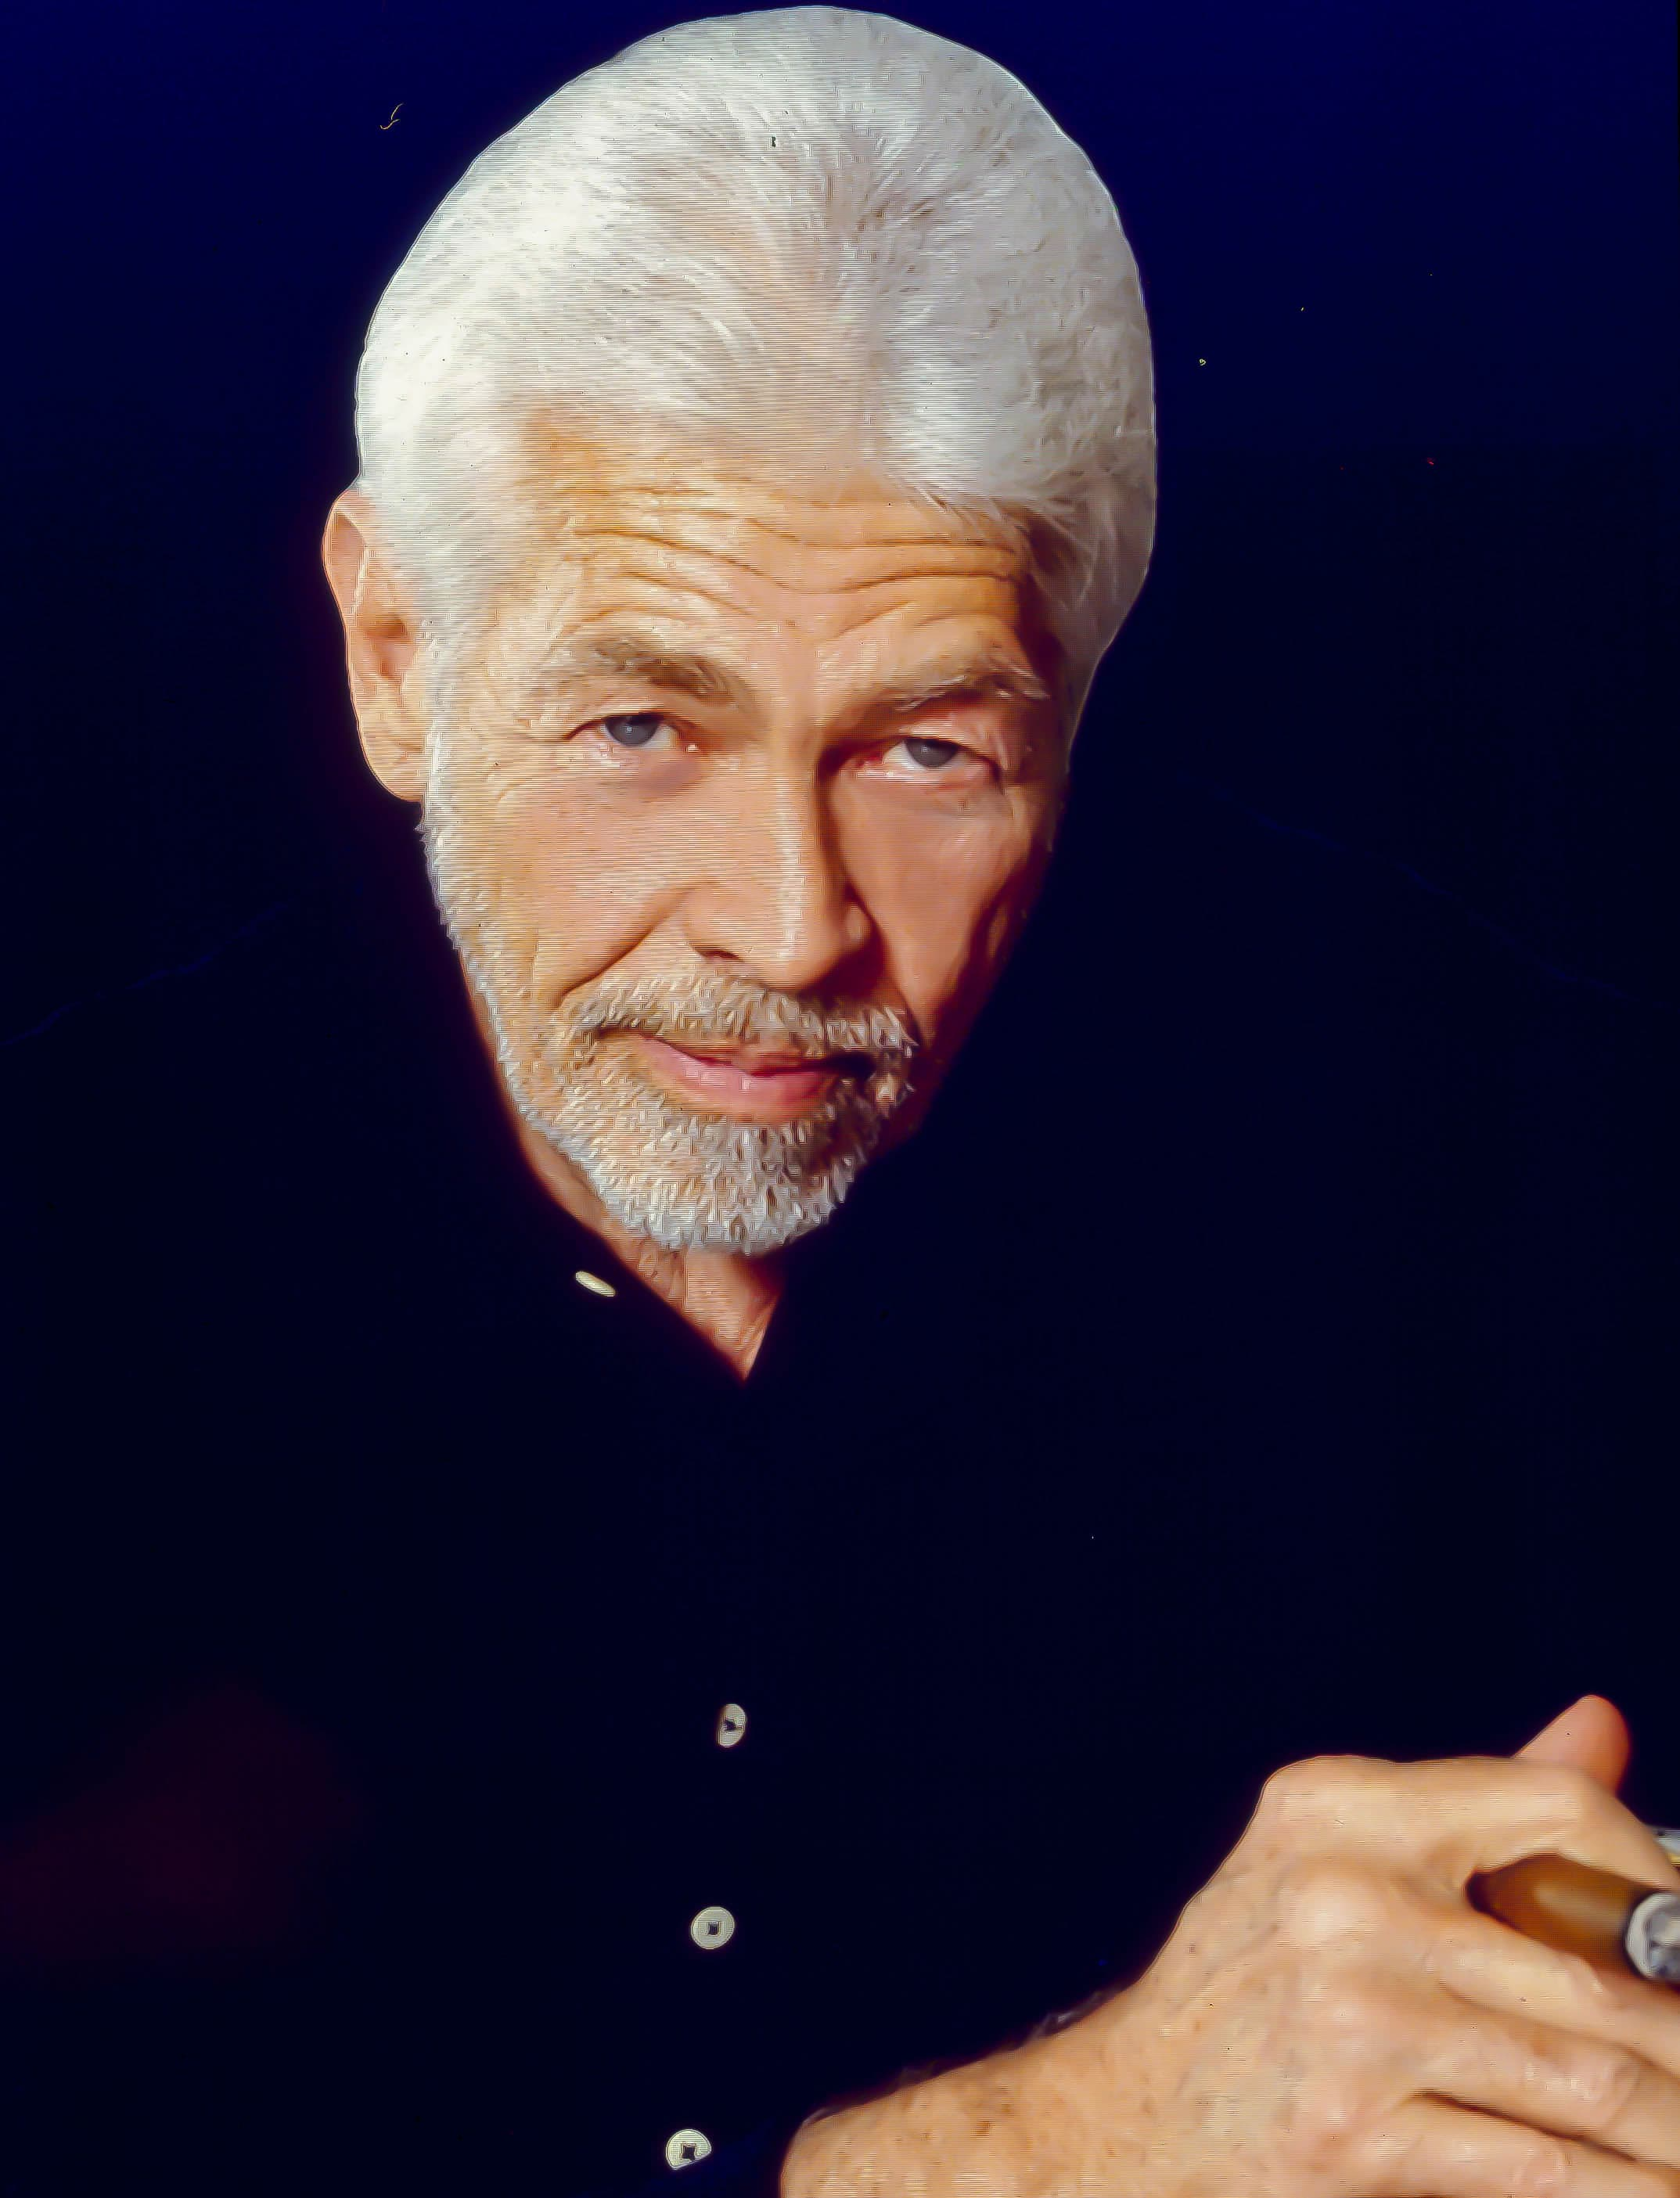 James Coburn For mobile